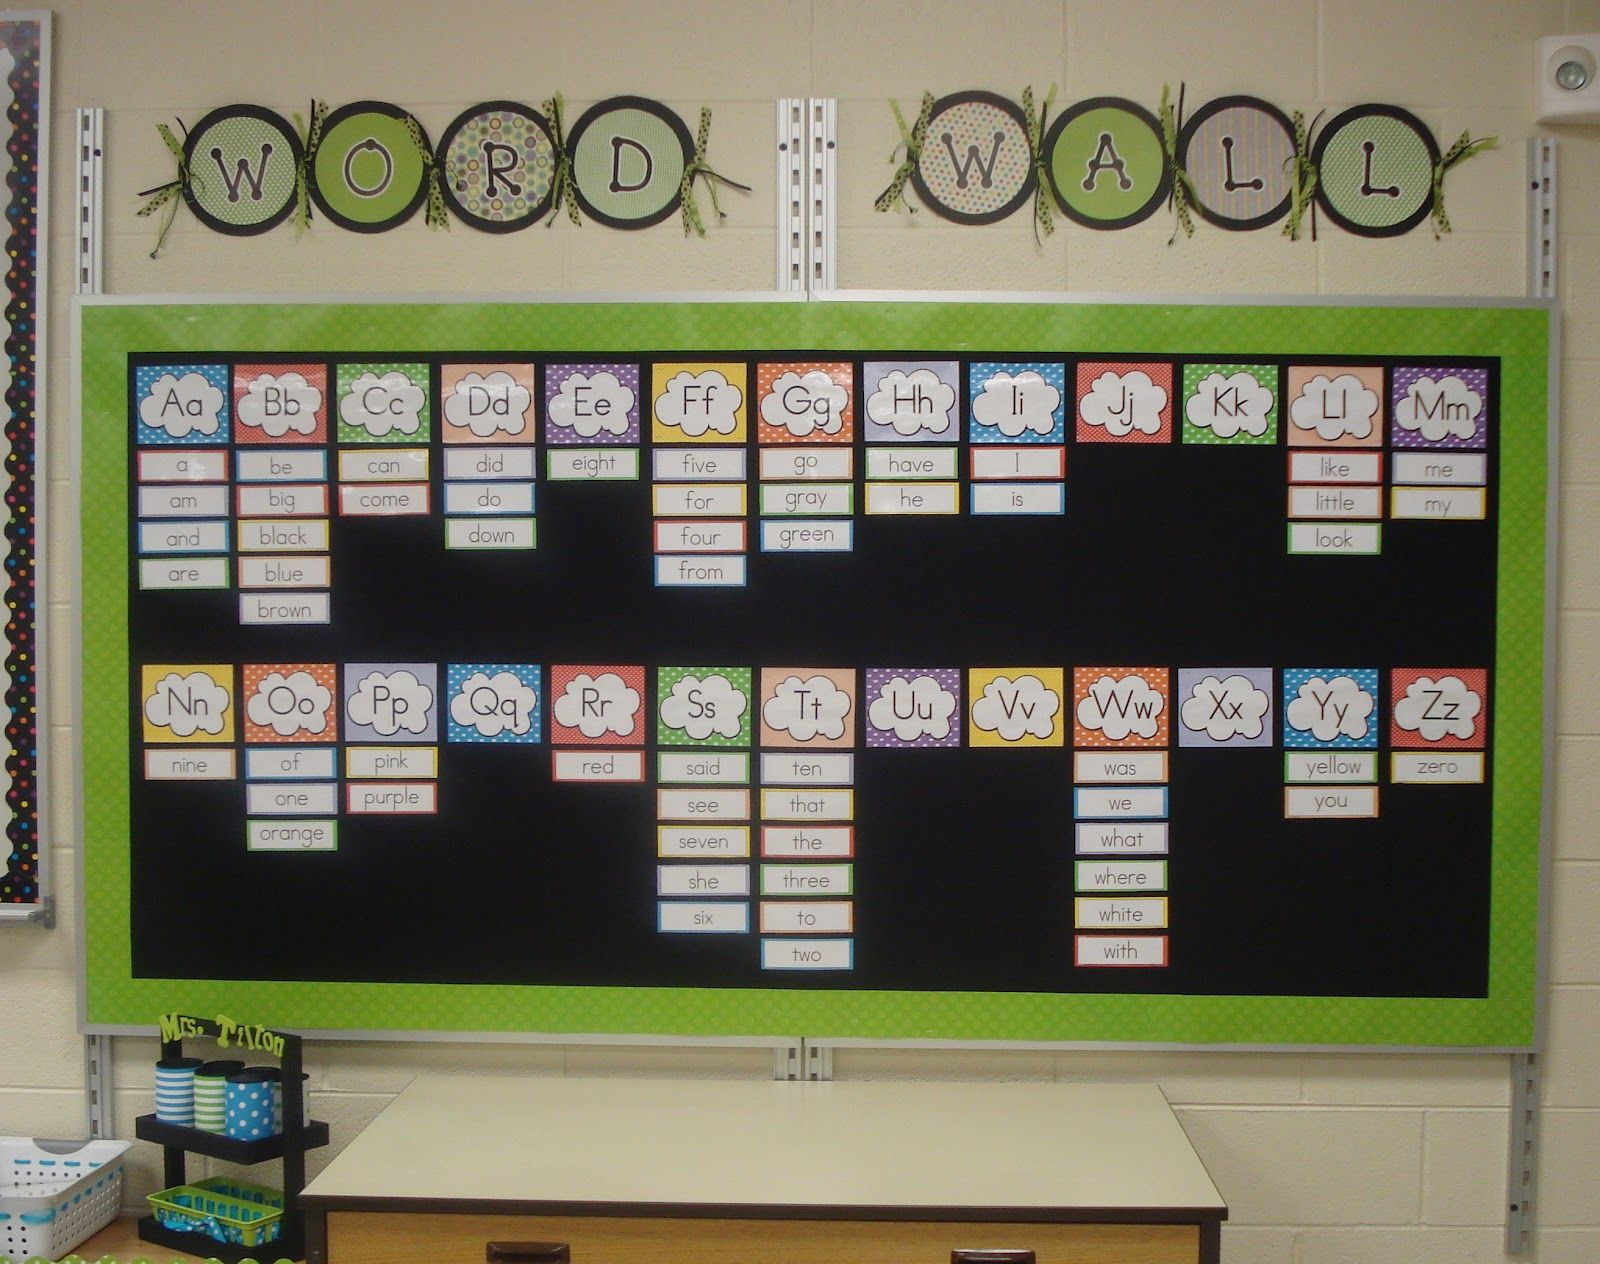 Classroom Interactive Ideas ~ Storage tip pinterest interactive word wall bulletin